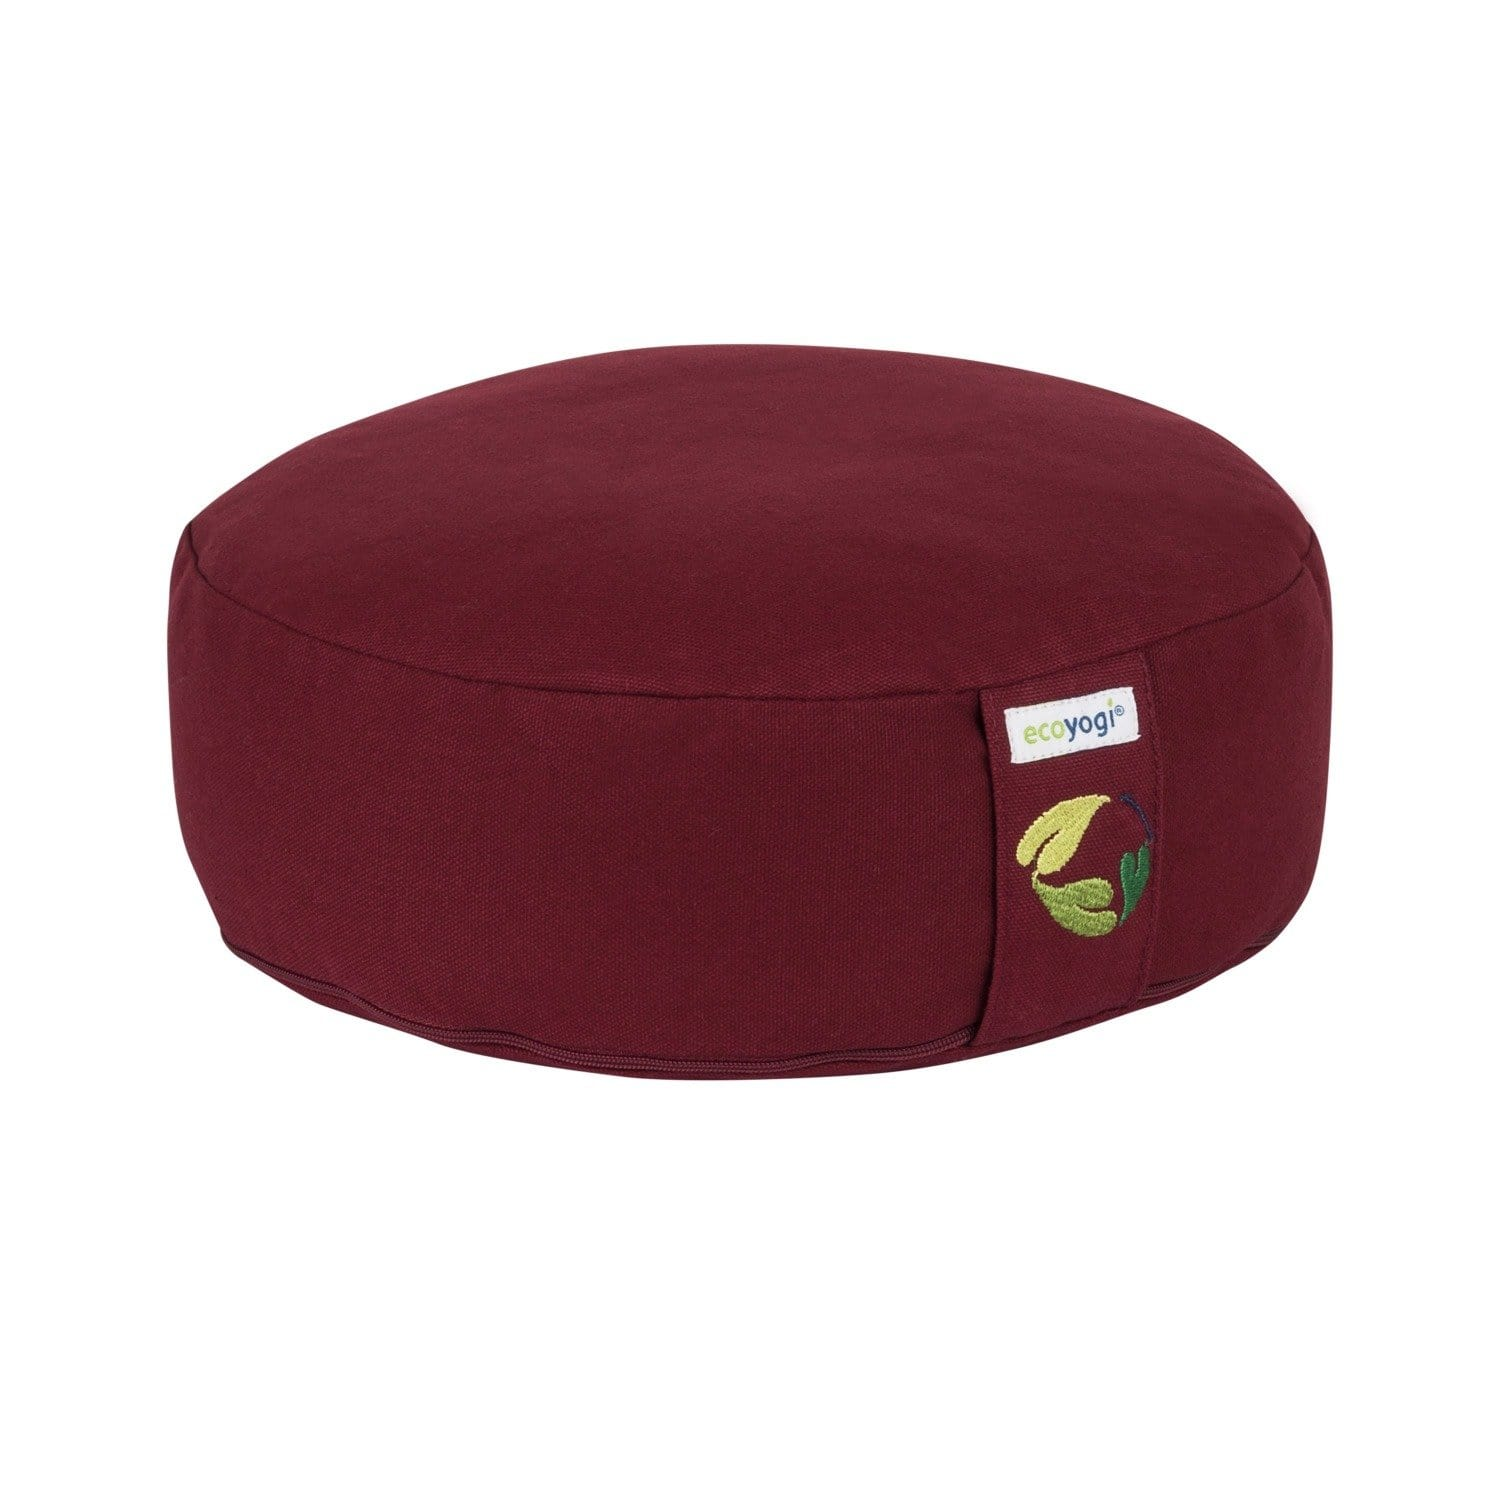 Sustainable meditation cushion low made of organic cotton (GOTS certified) and filling in natural purified buckwheat chaff bordeaux